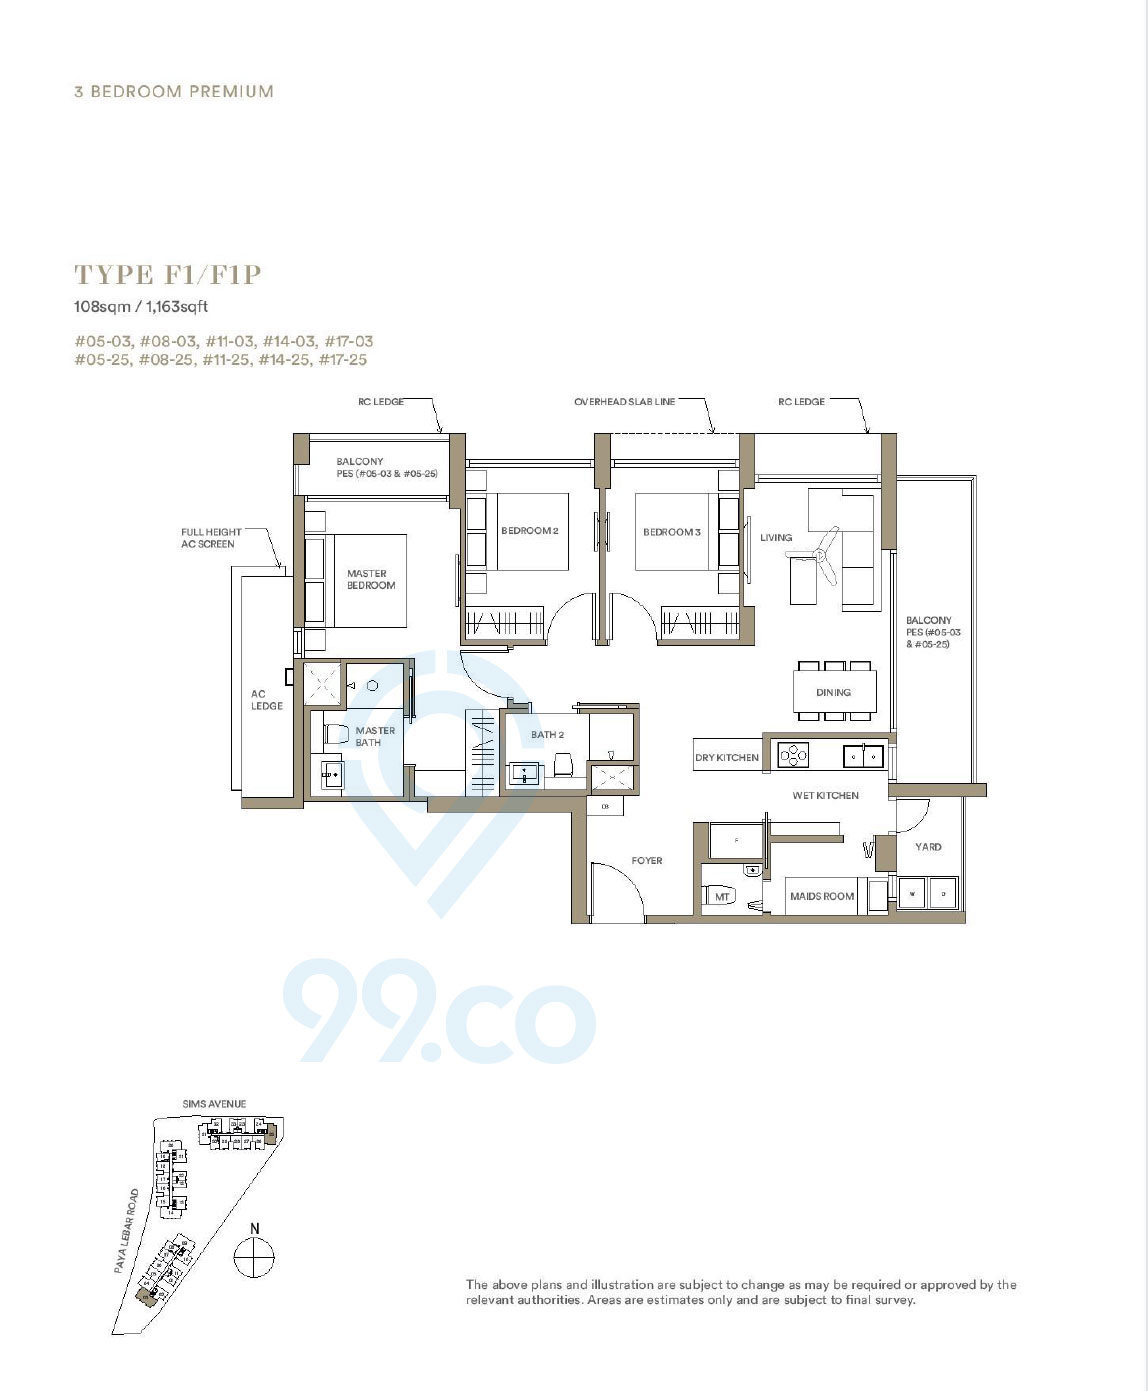 Park Place Residences 3 Bedroom Premium Floor Plan